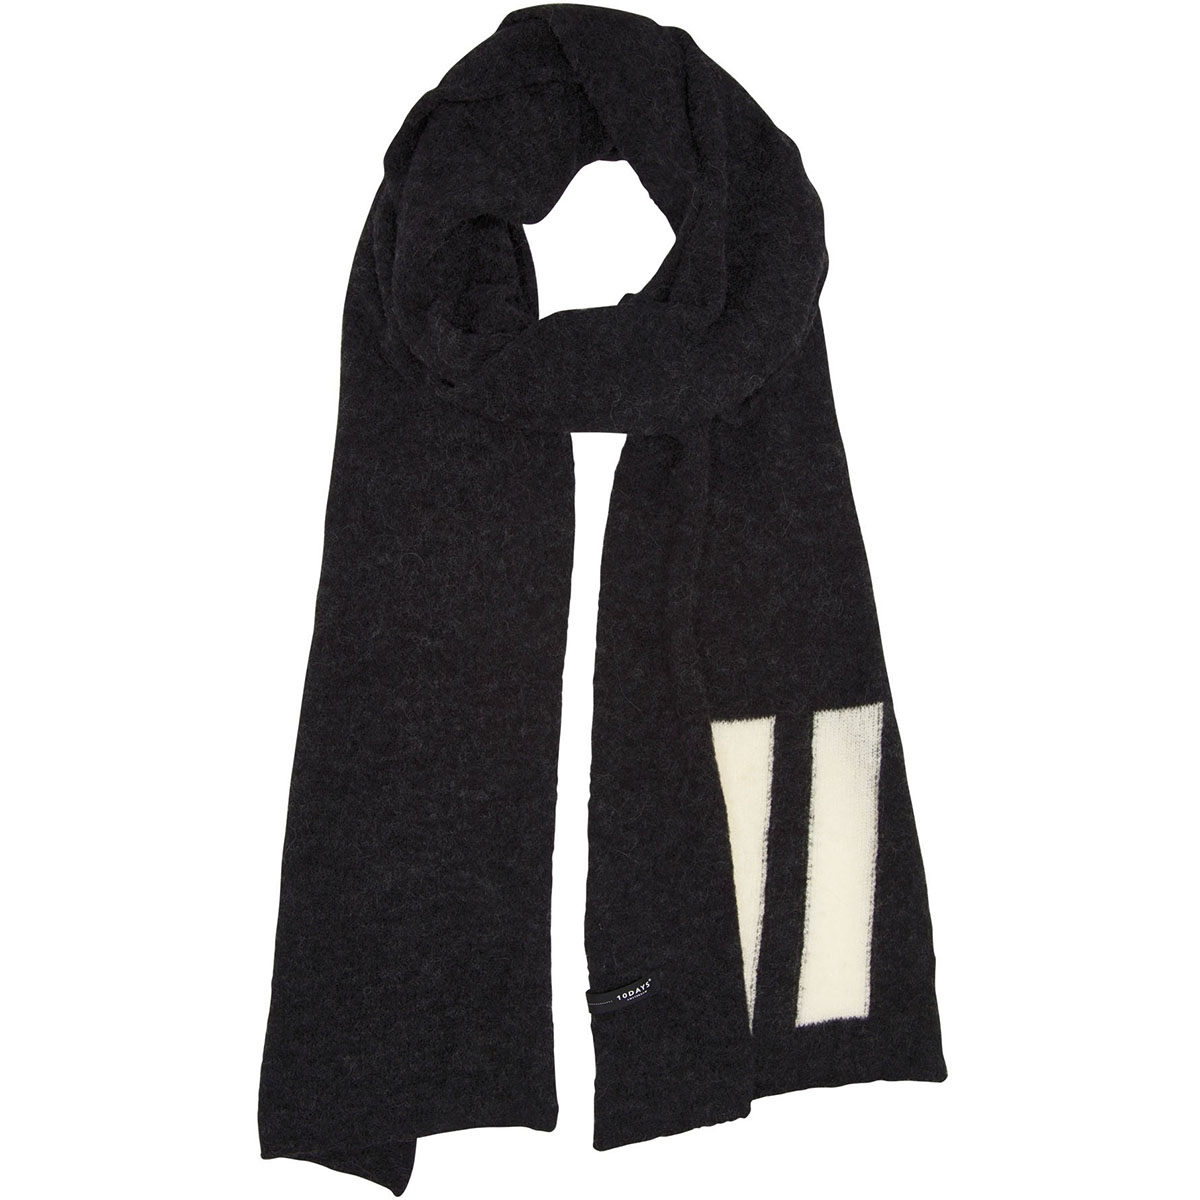 scarf 20 695 9104 10 days sjaal 4002 antra melee